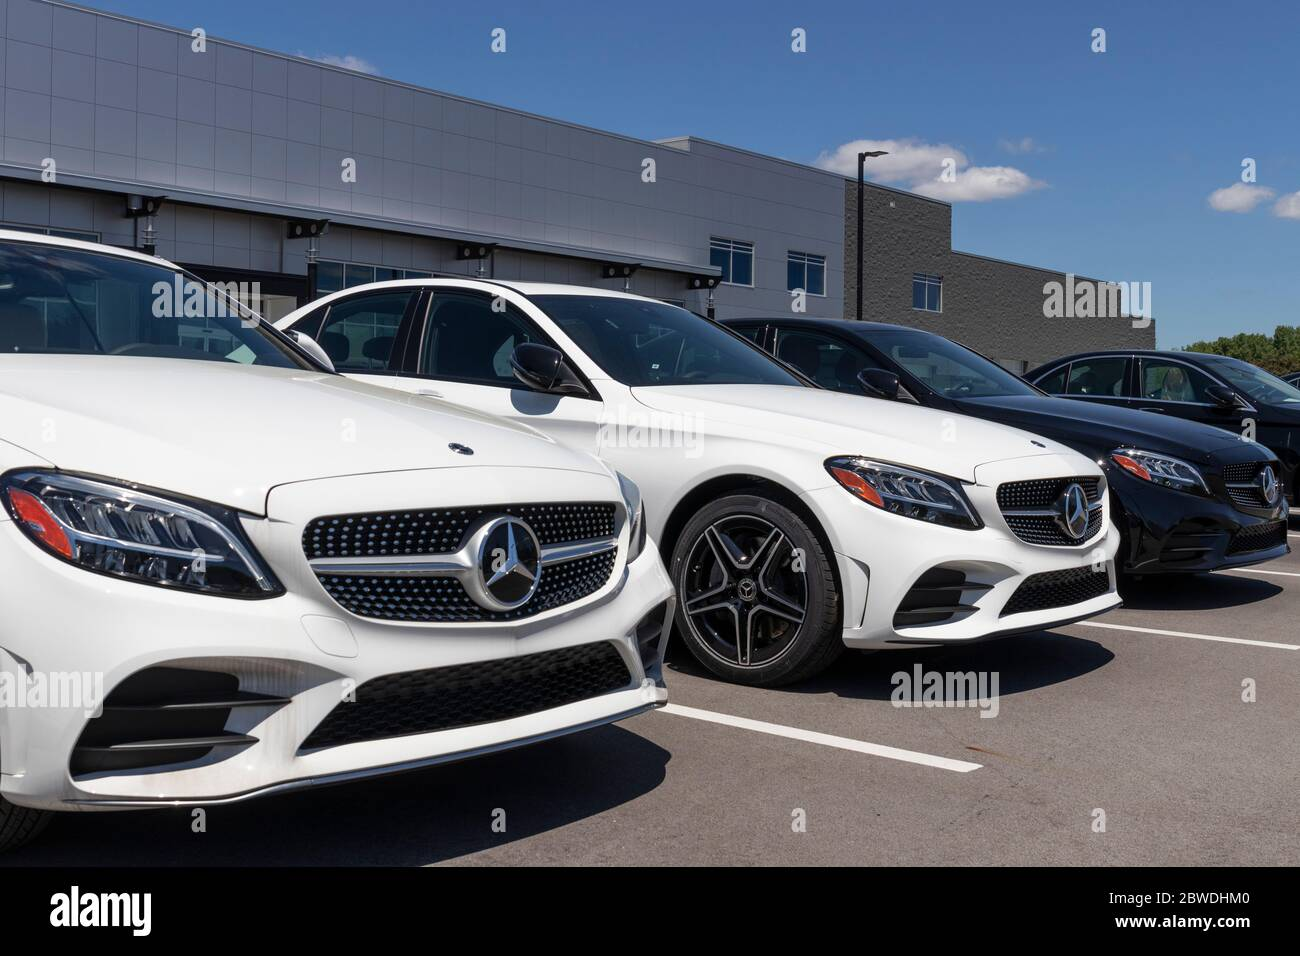 indianapolis circa may 2020 mercedes benz dealership mercedes benz is a global automobile manufacturer and a division of daimler ag stock photo alamy alamy